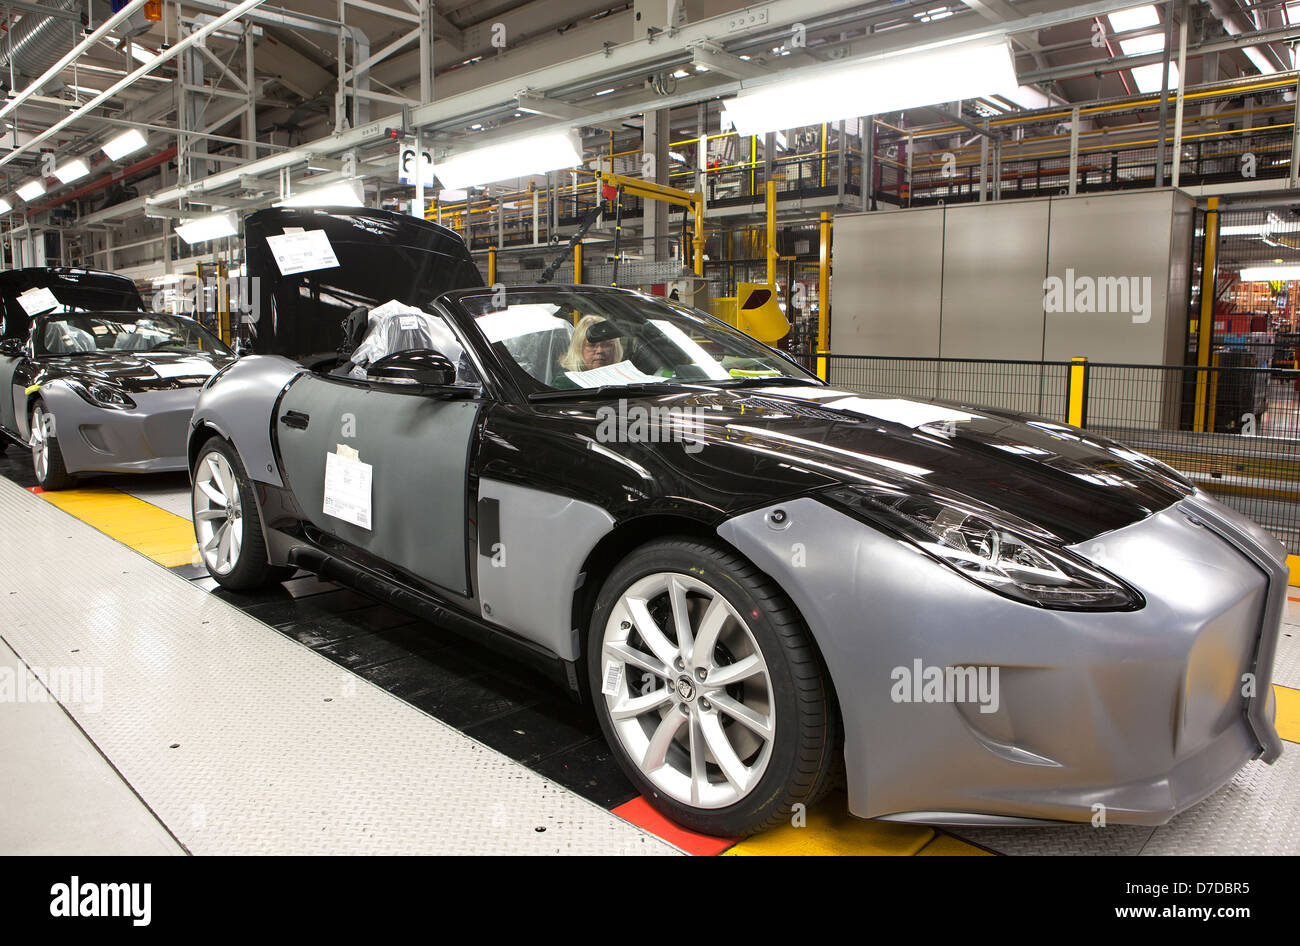 Inside Jaguar Car Plant In Castle Bromwich, Birmingham On The Production  Line Of The New F Type Sports Car. March 12th, 2013